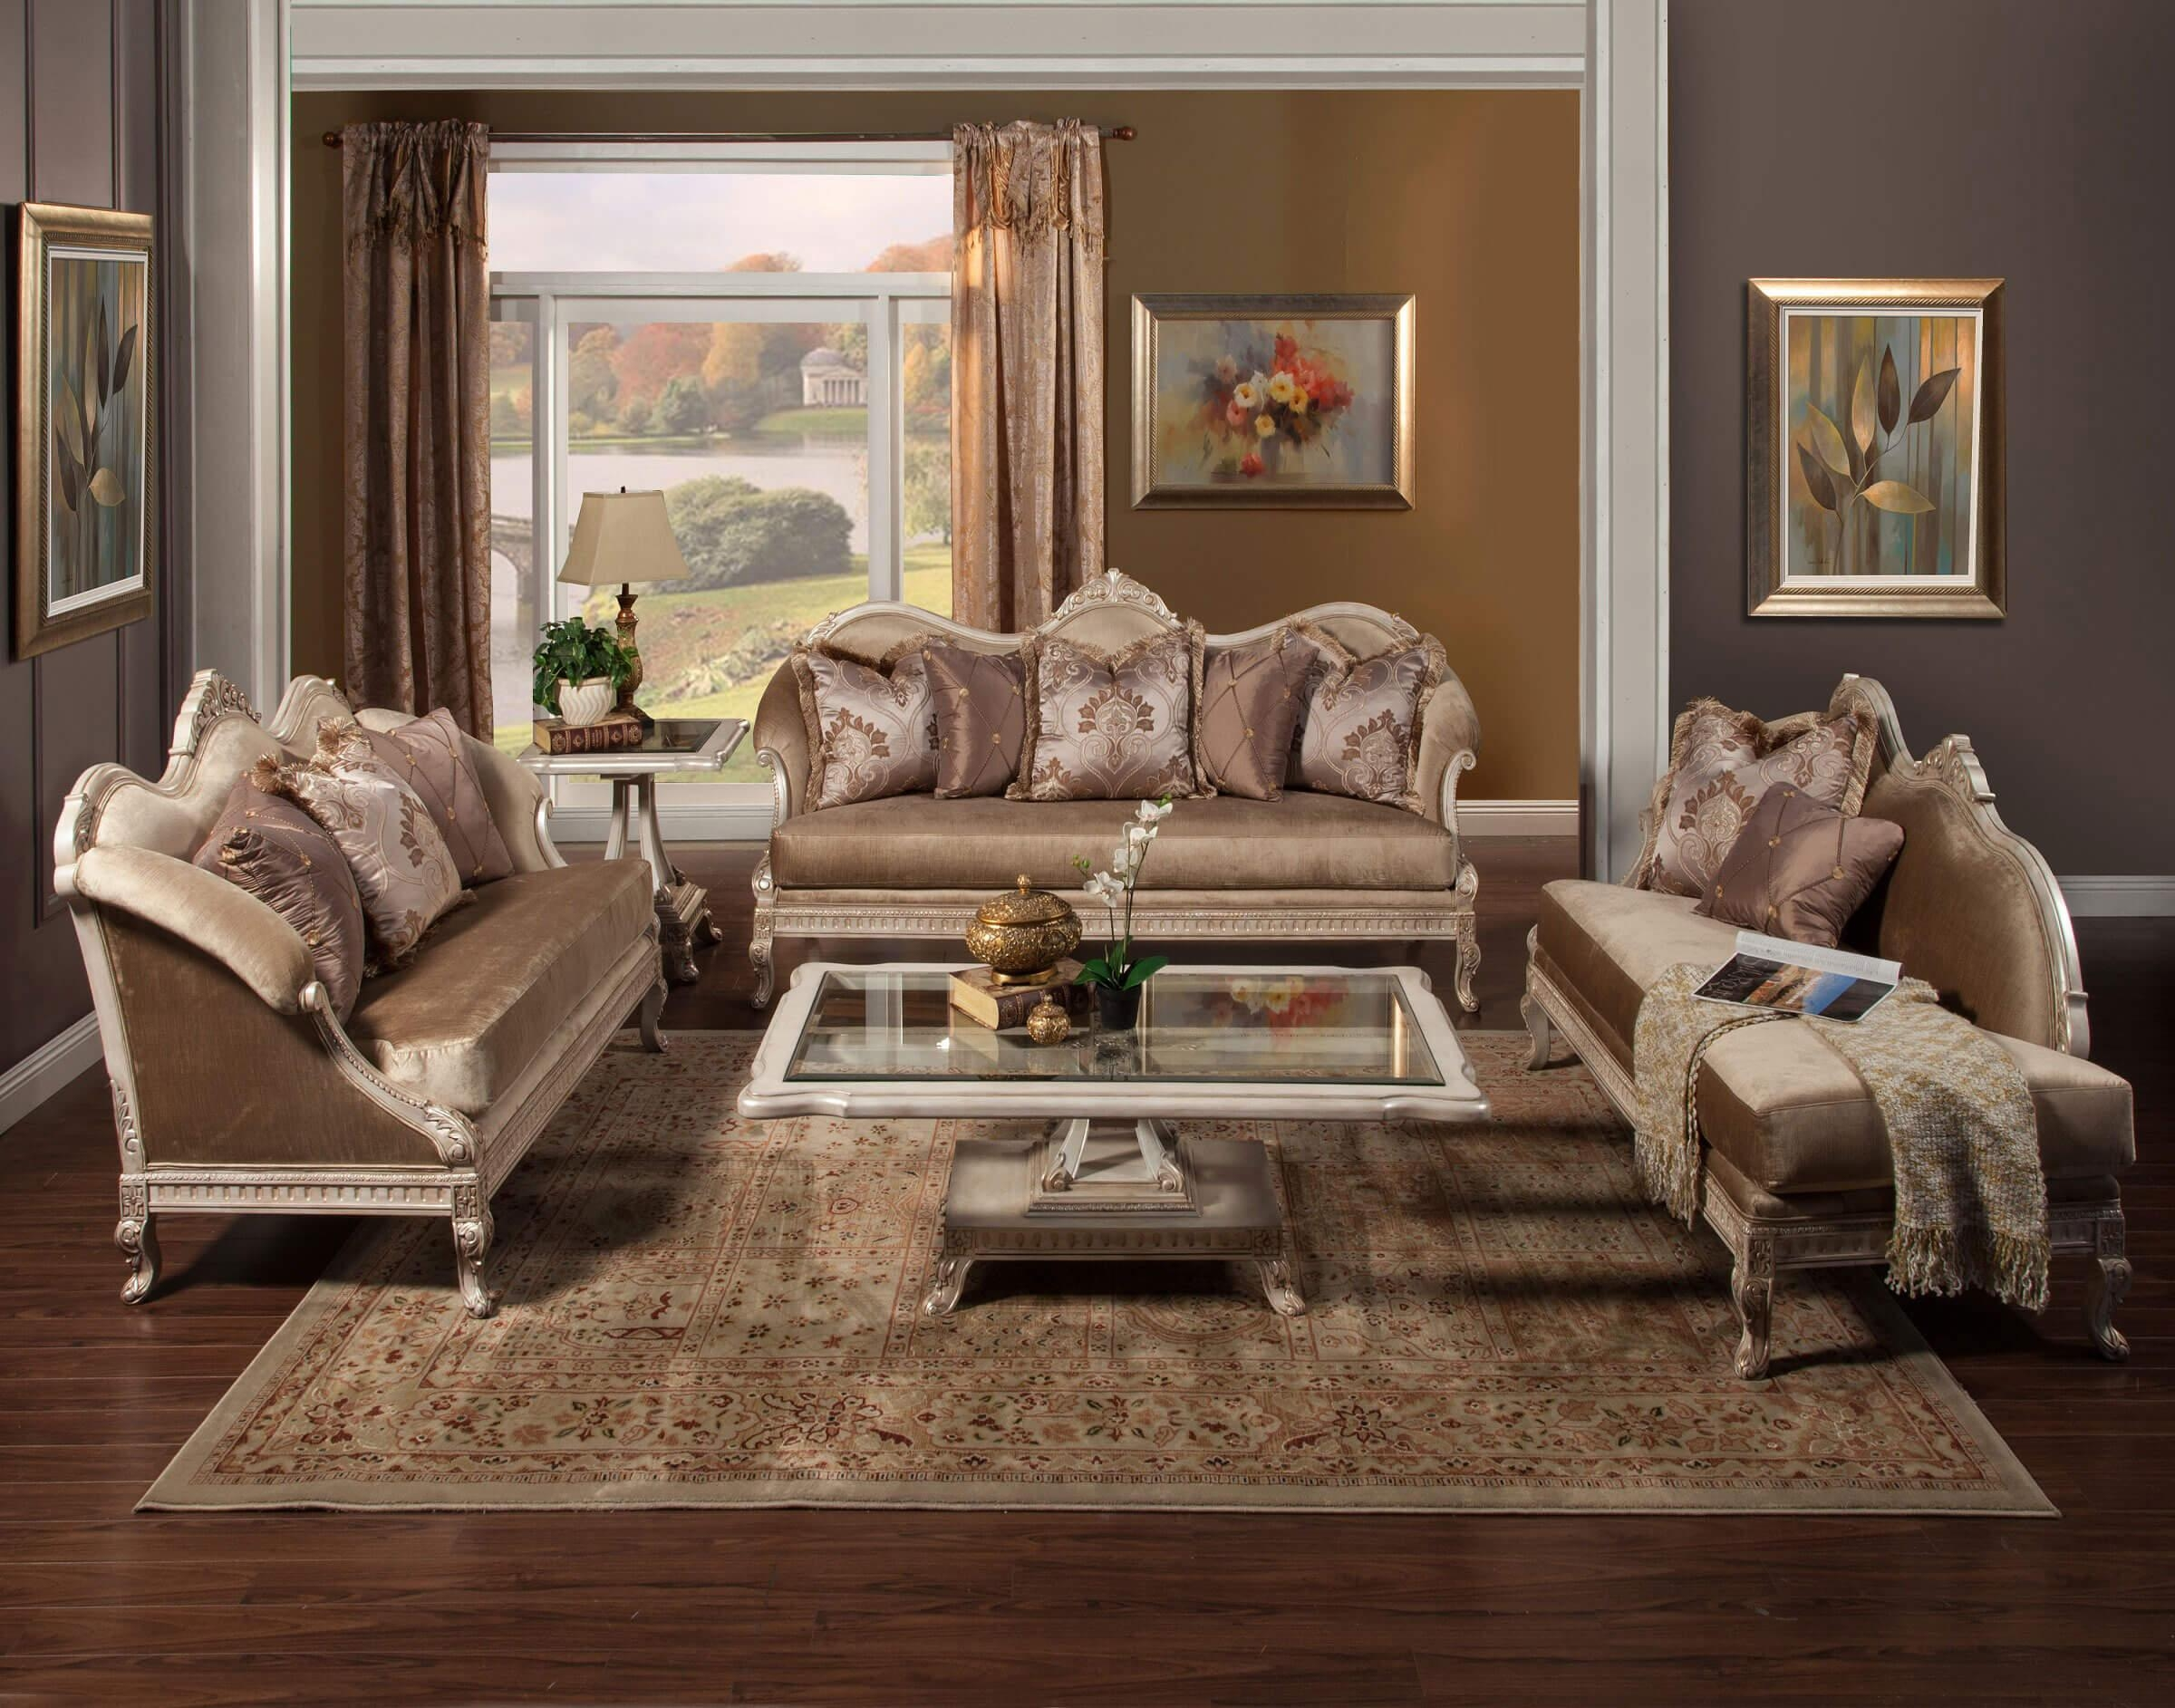 Perla Wood Trim Sofa & Chaise Lounge Set • Usa Furniture Online Pertaining To Sofas And Chaises Lounge Sets (Image 14 of 20)